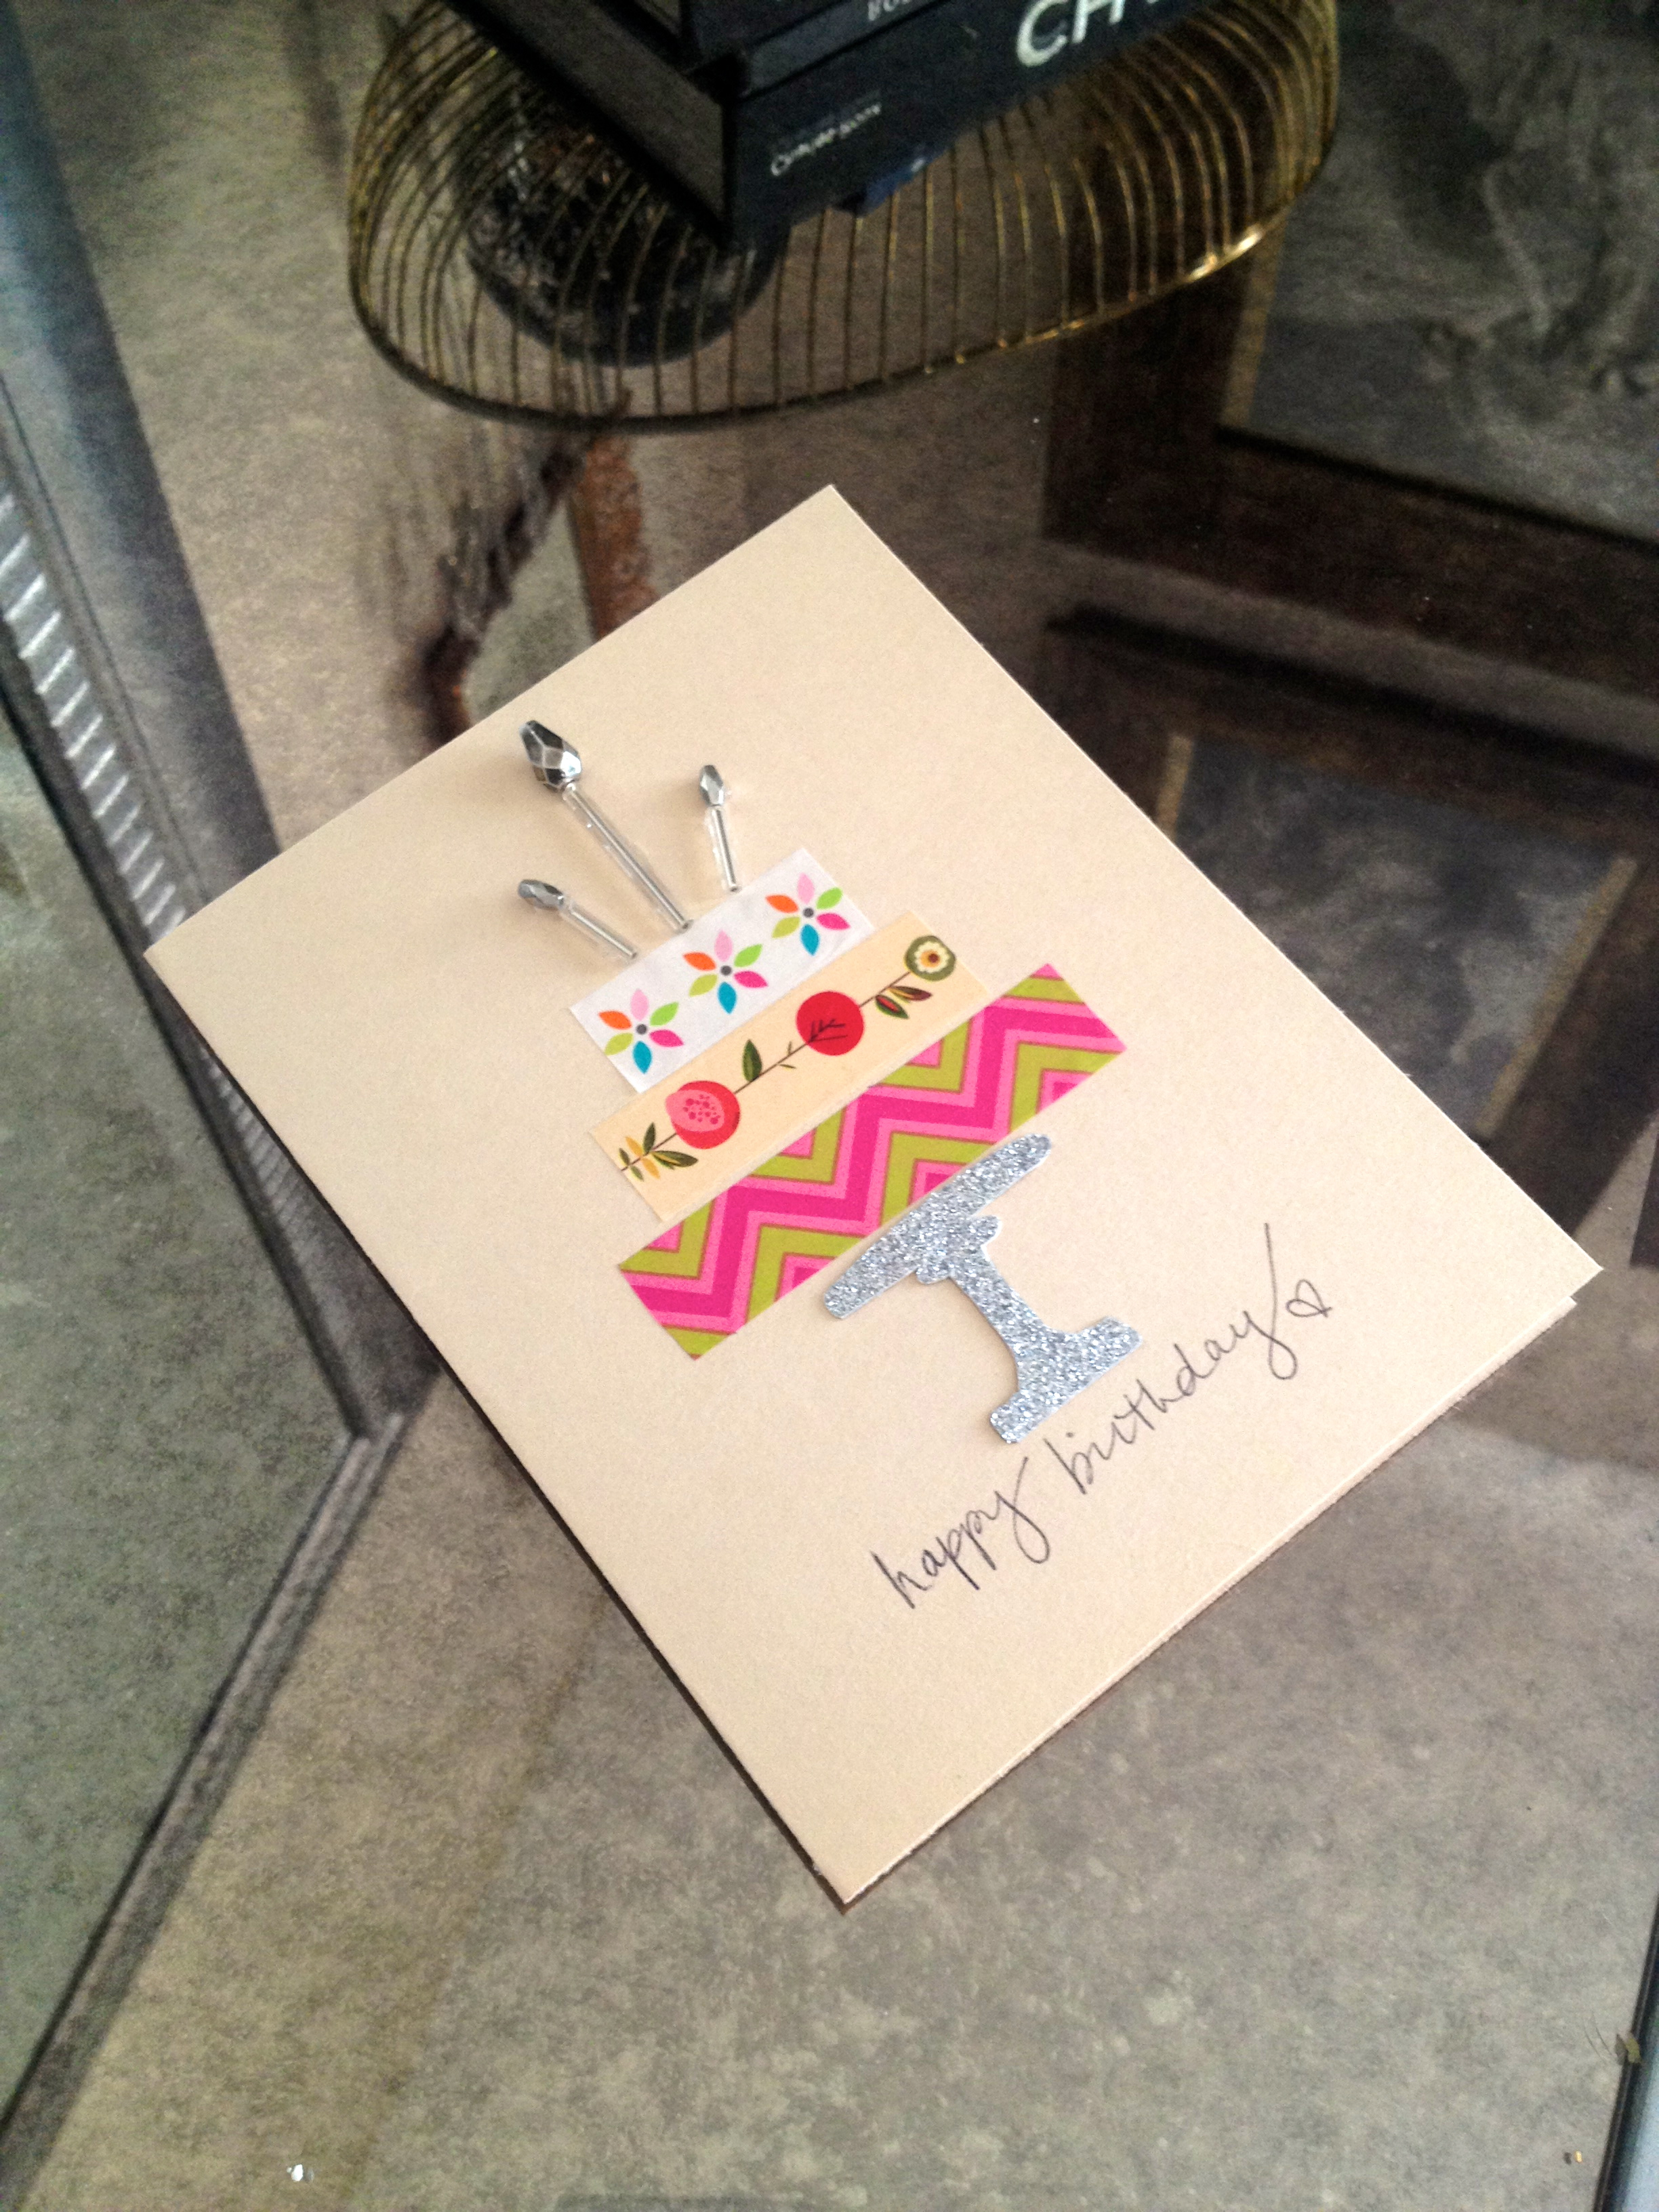 Diy crafts for bathroom - Washi Tape Cake Birthday Card Making It With Danielle